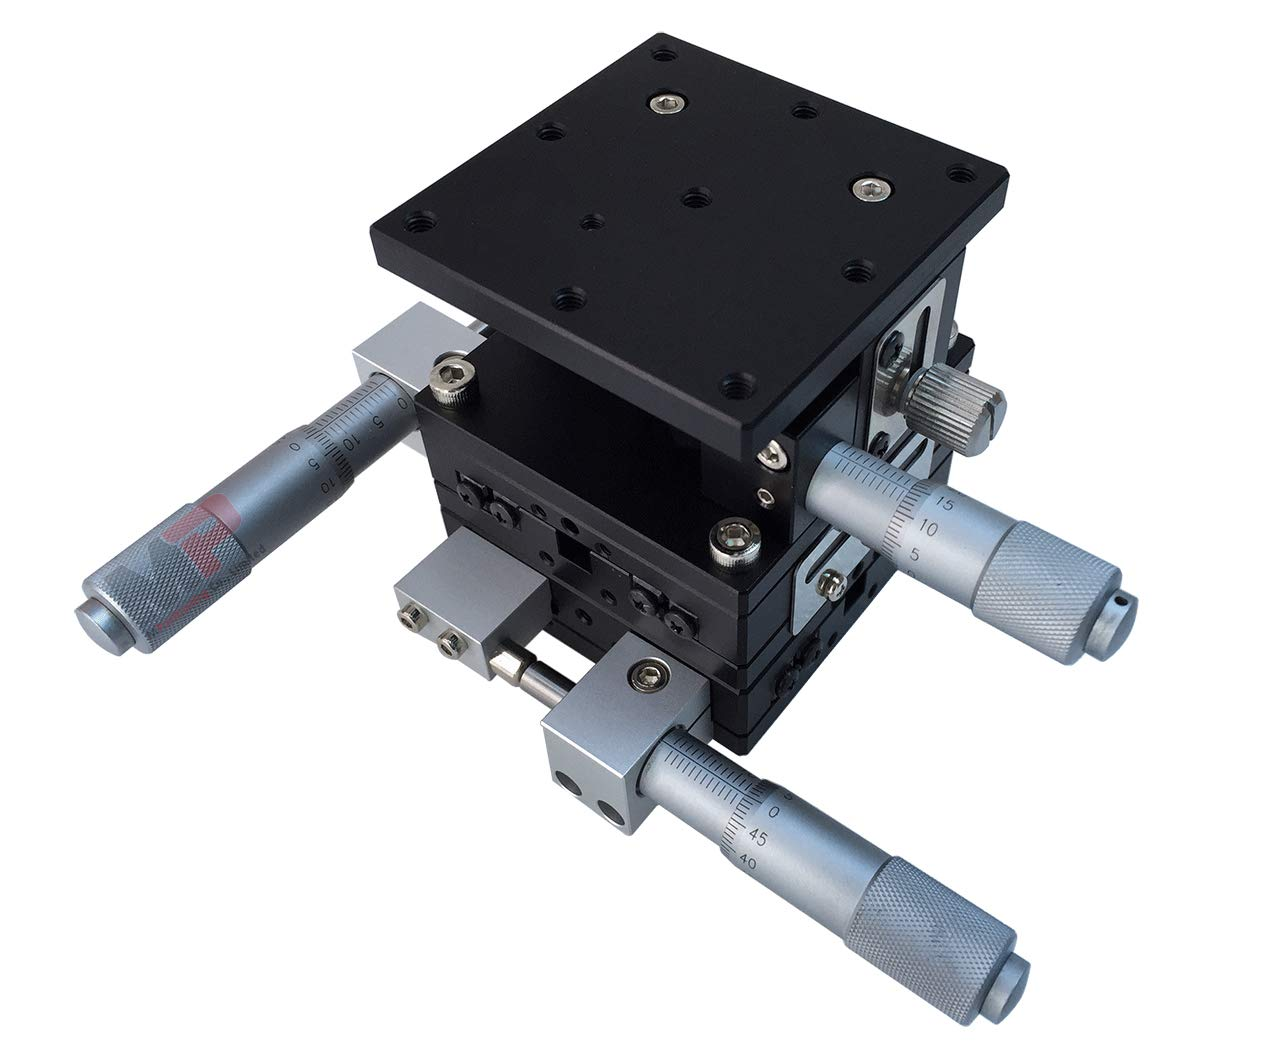 XYZ Linear Translation Popular products Stage Precisi Be super welcome T60XYZ-25L10A MPositioning